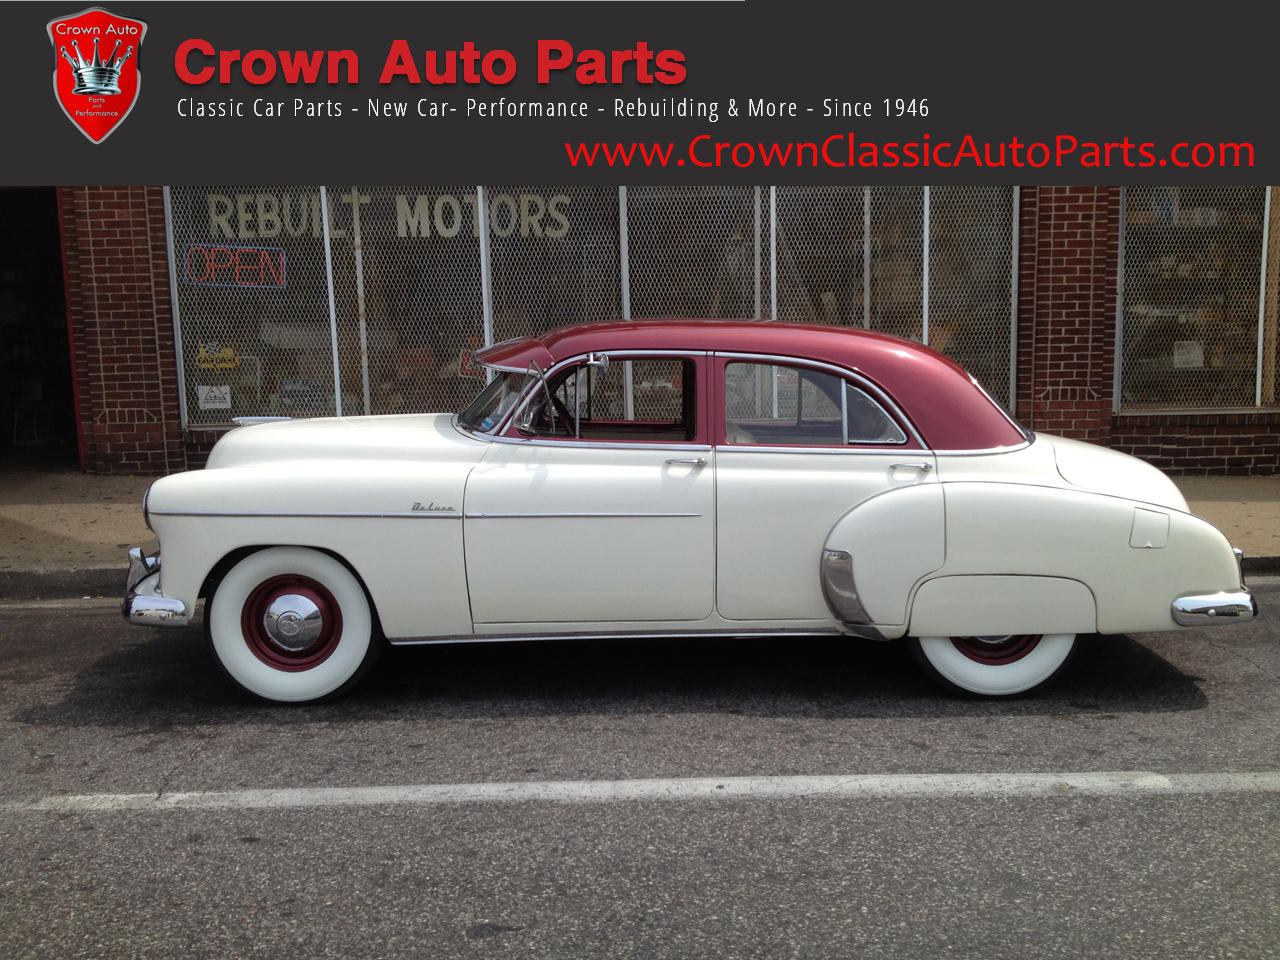 Crown Auto Parts & Rebuilding image 28